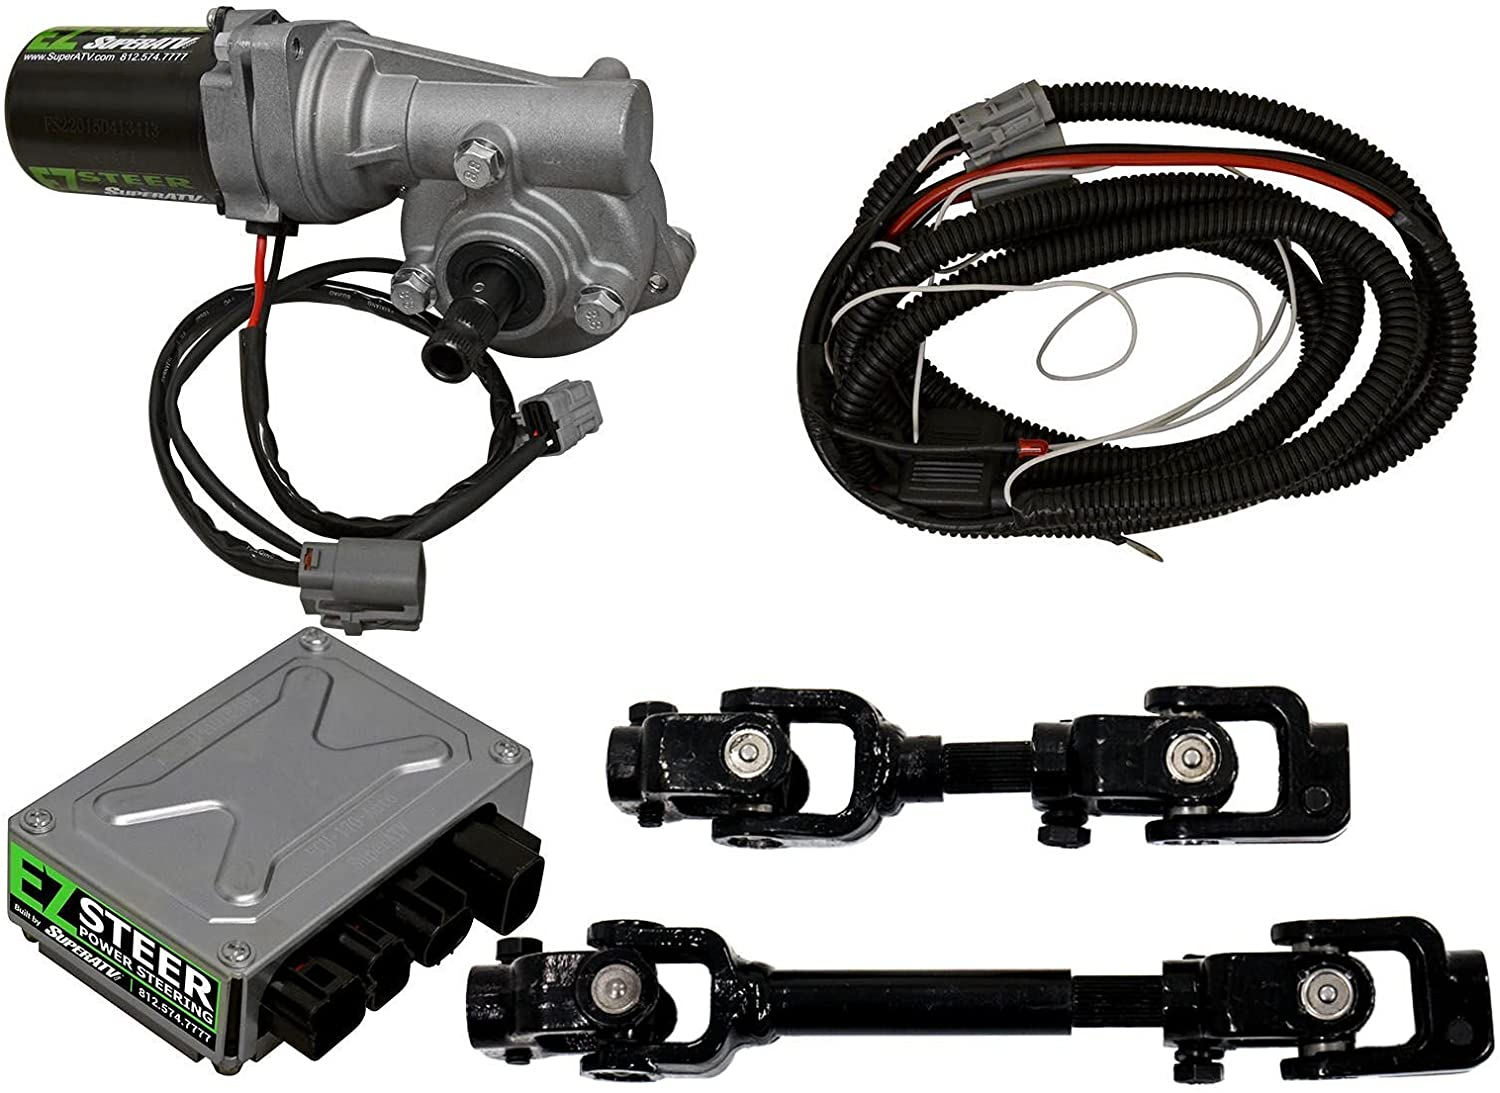 SuperATV EZ-STEER Power Steering Kit for Honda Pioneer 700 (2017+) - Eliminates Bump Steer and Reduces Steering Efforts For a More Enjoyable Ride!